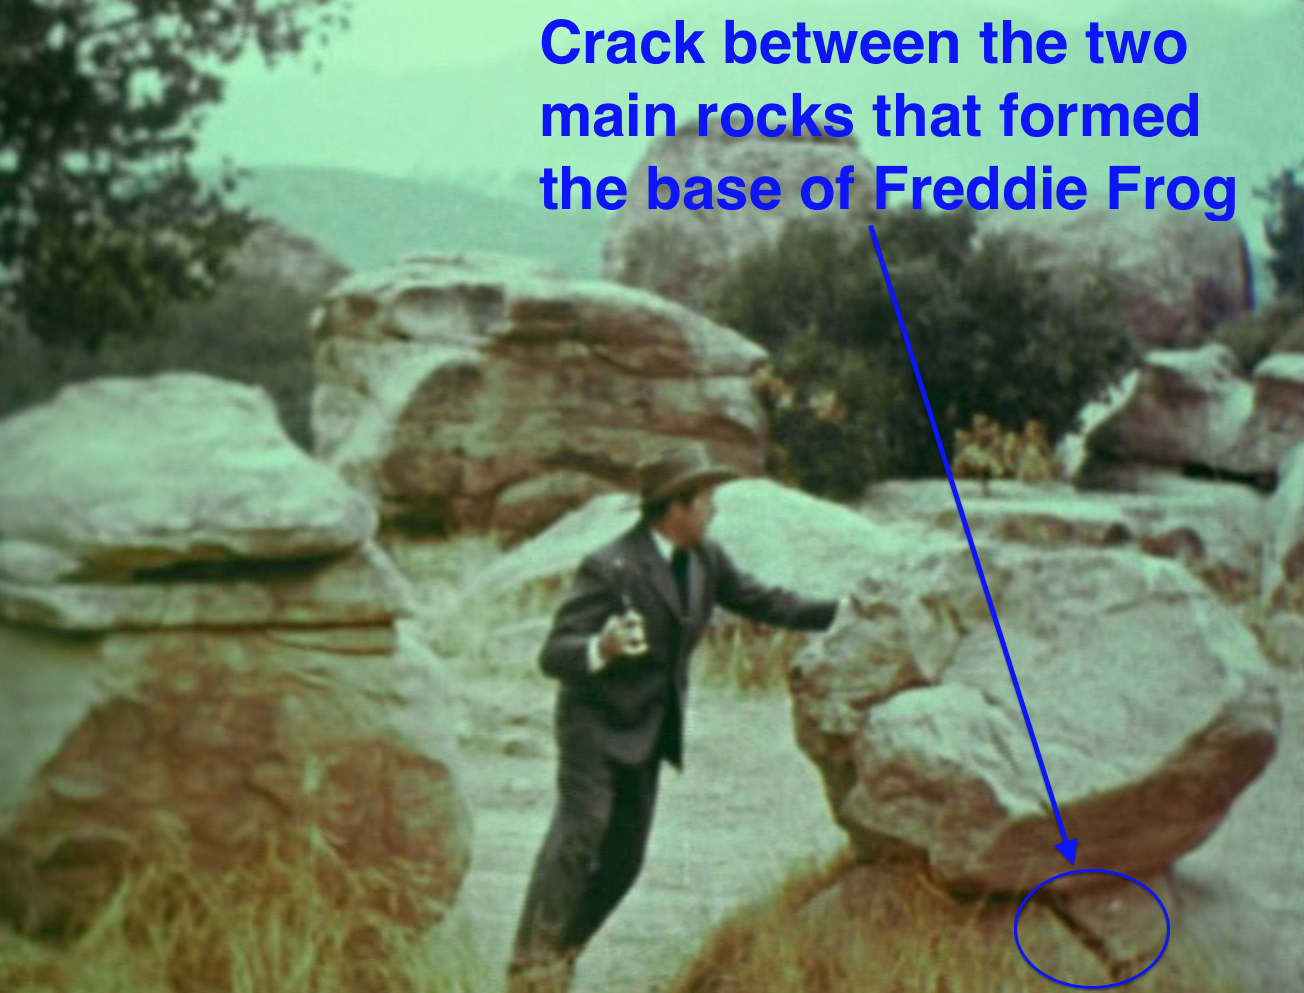 That other rock, of course, was Freddie Frog, and these rocks formed its ba